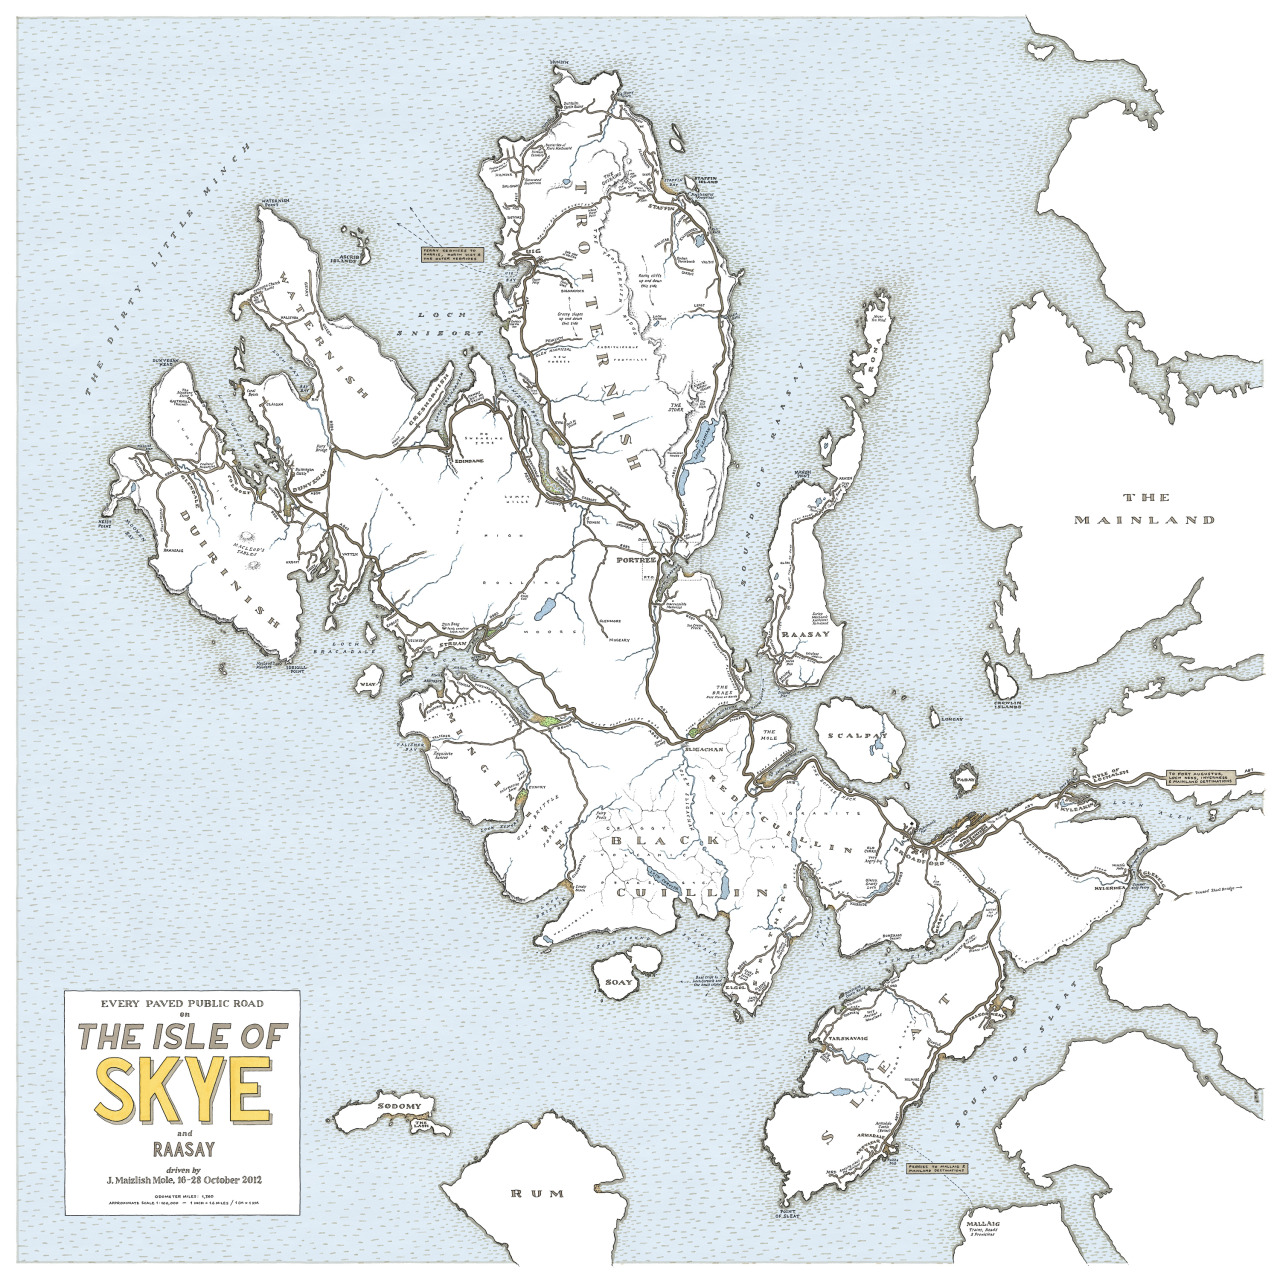 Memory mapping the Isle of Skye